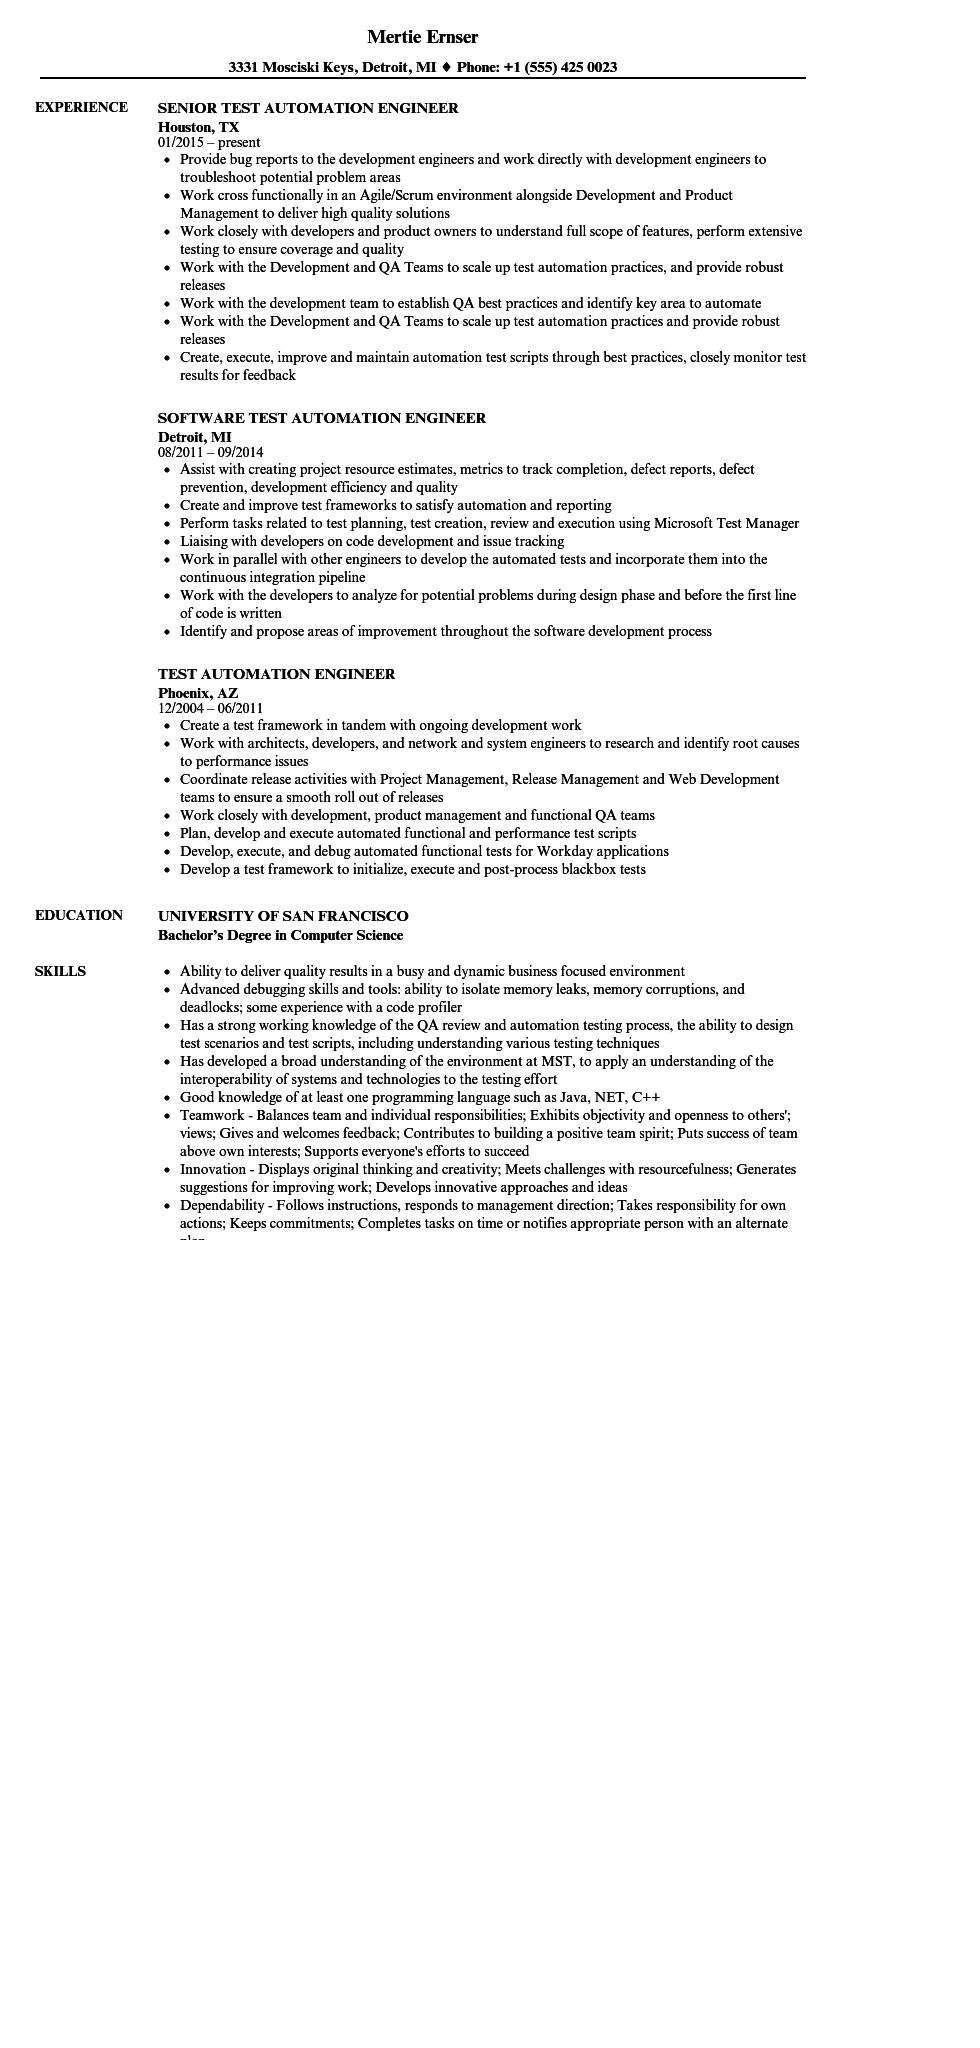 79 New Automation Engineer Resume for Ideas